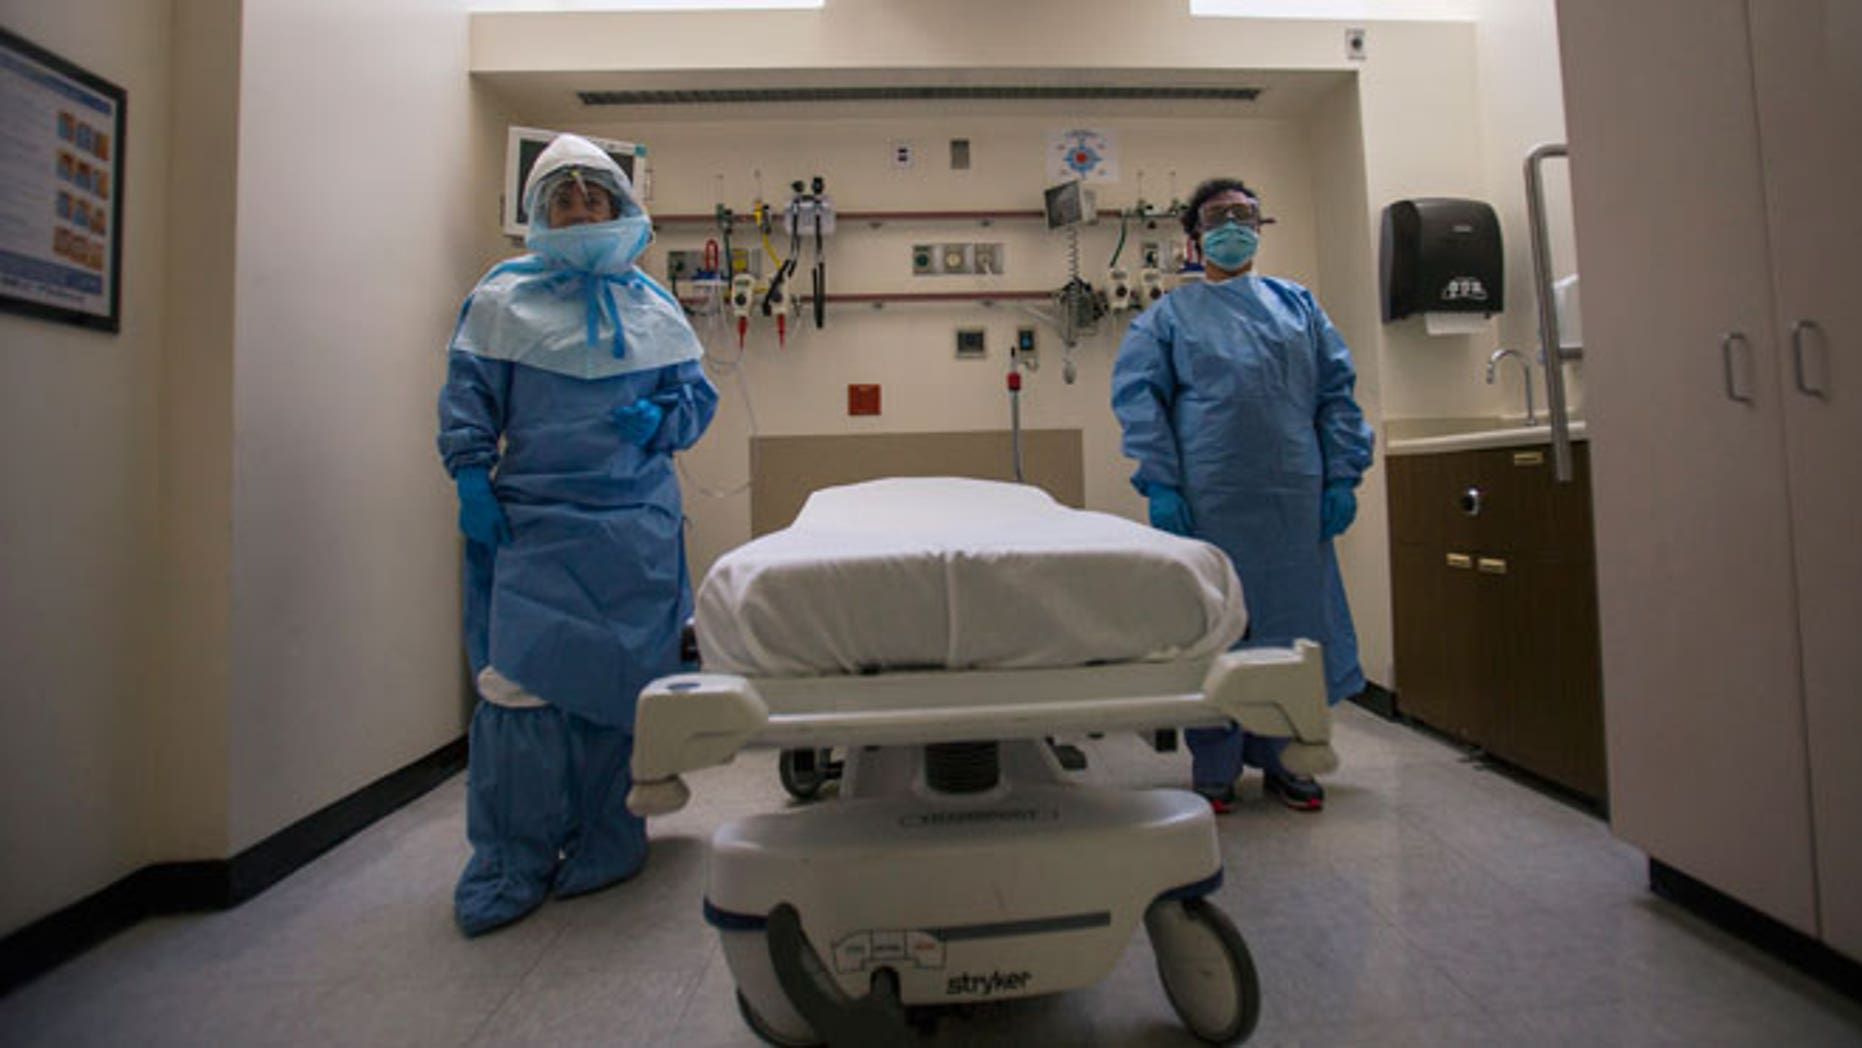 Health care workers display protective gear, which hospital staff would wear to protect them from an Ebola virus infection, inside an isolation room as part of a media tour in the emergency department of Bellevue Hospital in Manhattan, New York October 8, 2014.